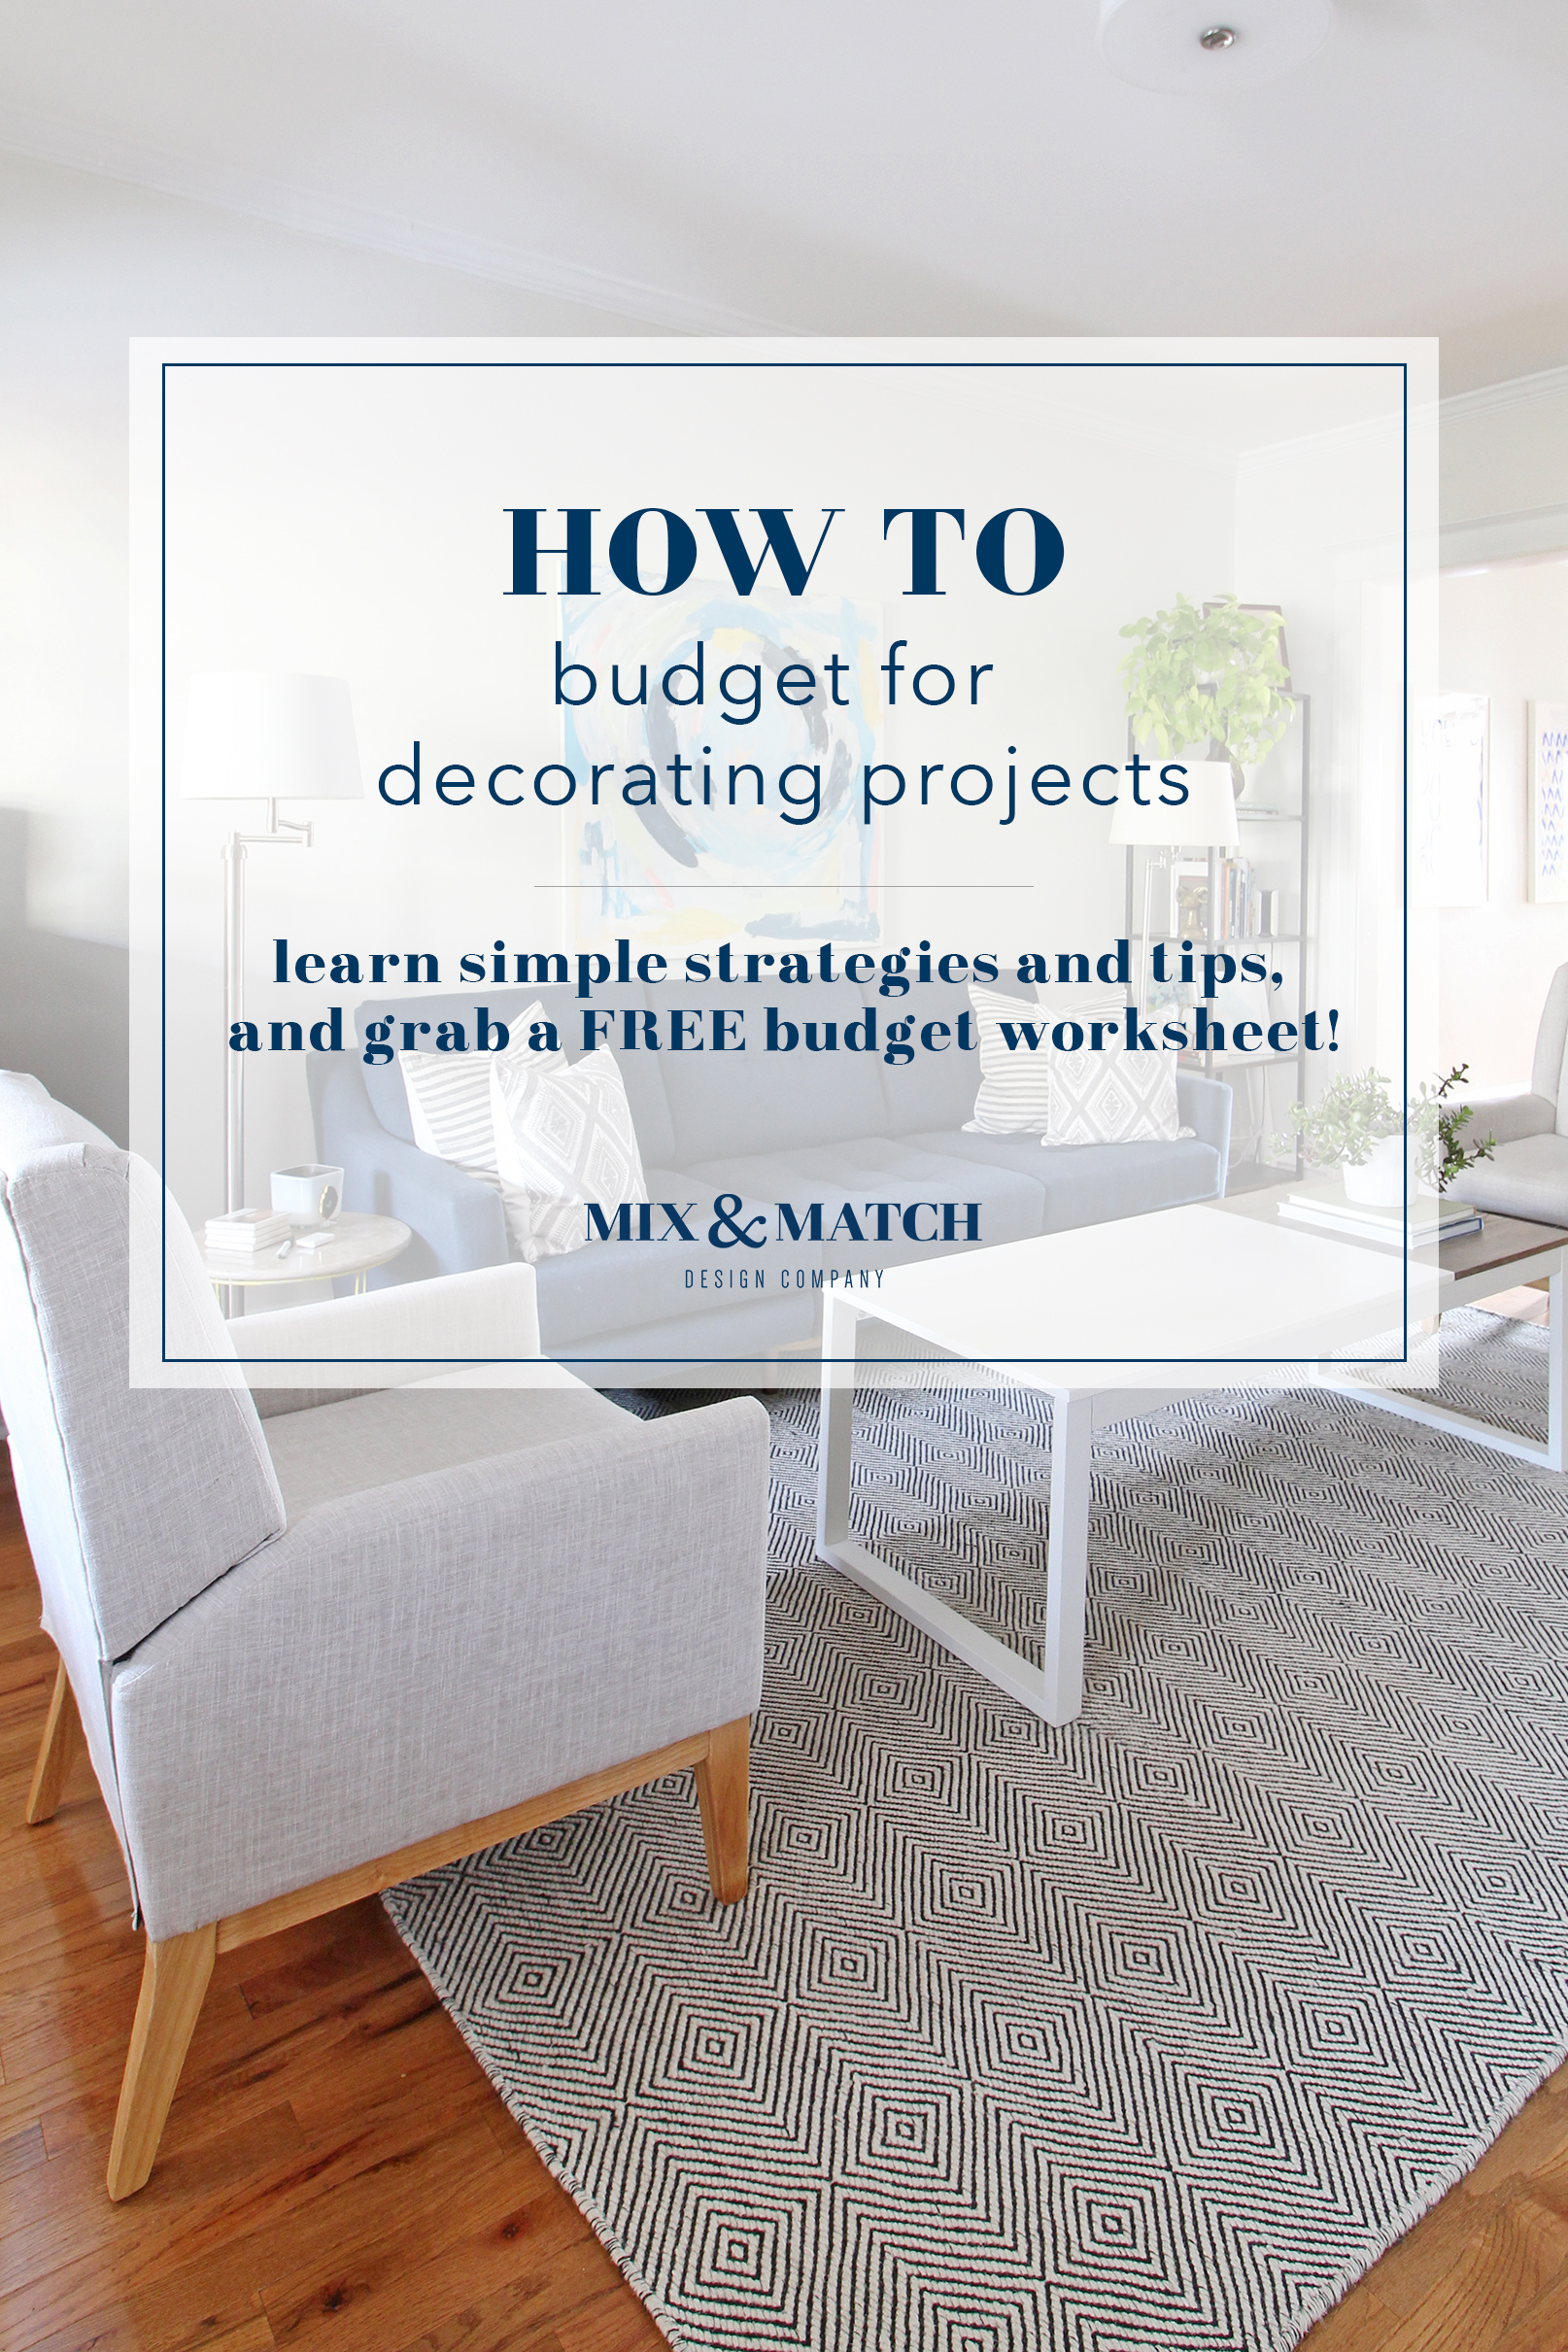 Though it might not be the most fun part, coming up with a budget for your decorating project is a key part of making it a successful one! Head to the blog to find out how to strategize and get tips on how to do it easily. I've also got a free budgeting spreadsheet for you to download for your next project!